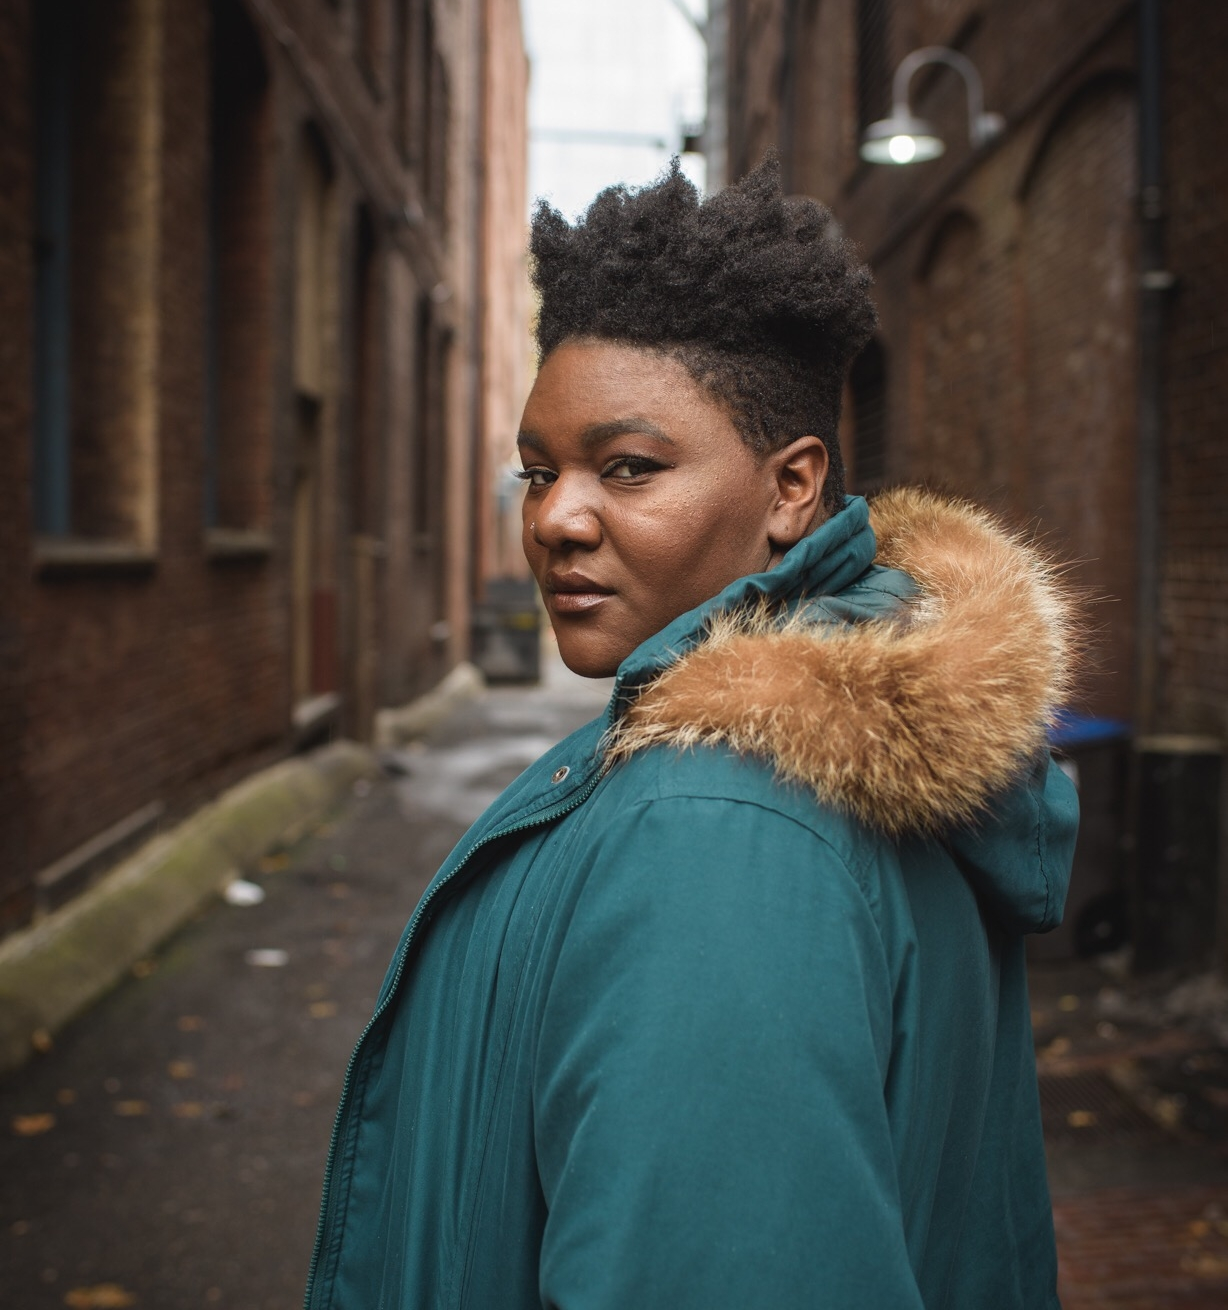 KandaMbenza-Ngoma - Kanda is a singer songwriter, model and artist of many types local to Portland. Along with having performed with several prestigious musicians and bands in town, she has been the ambassador and face many fashion lines including Beth Ditto, Chubby Cartwheels and Copper Union. Kanda is a big advocate for racial equity, mental health and body positivity. In spare time, Kanda can be found playing the guitar, listening to Frank Oceanor eating tacos. @kmbenzangoma